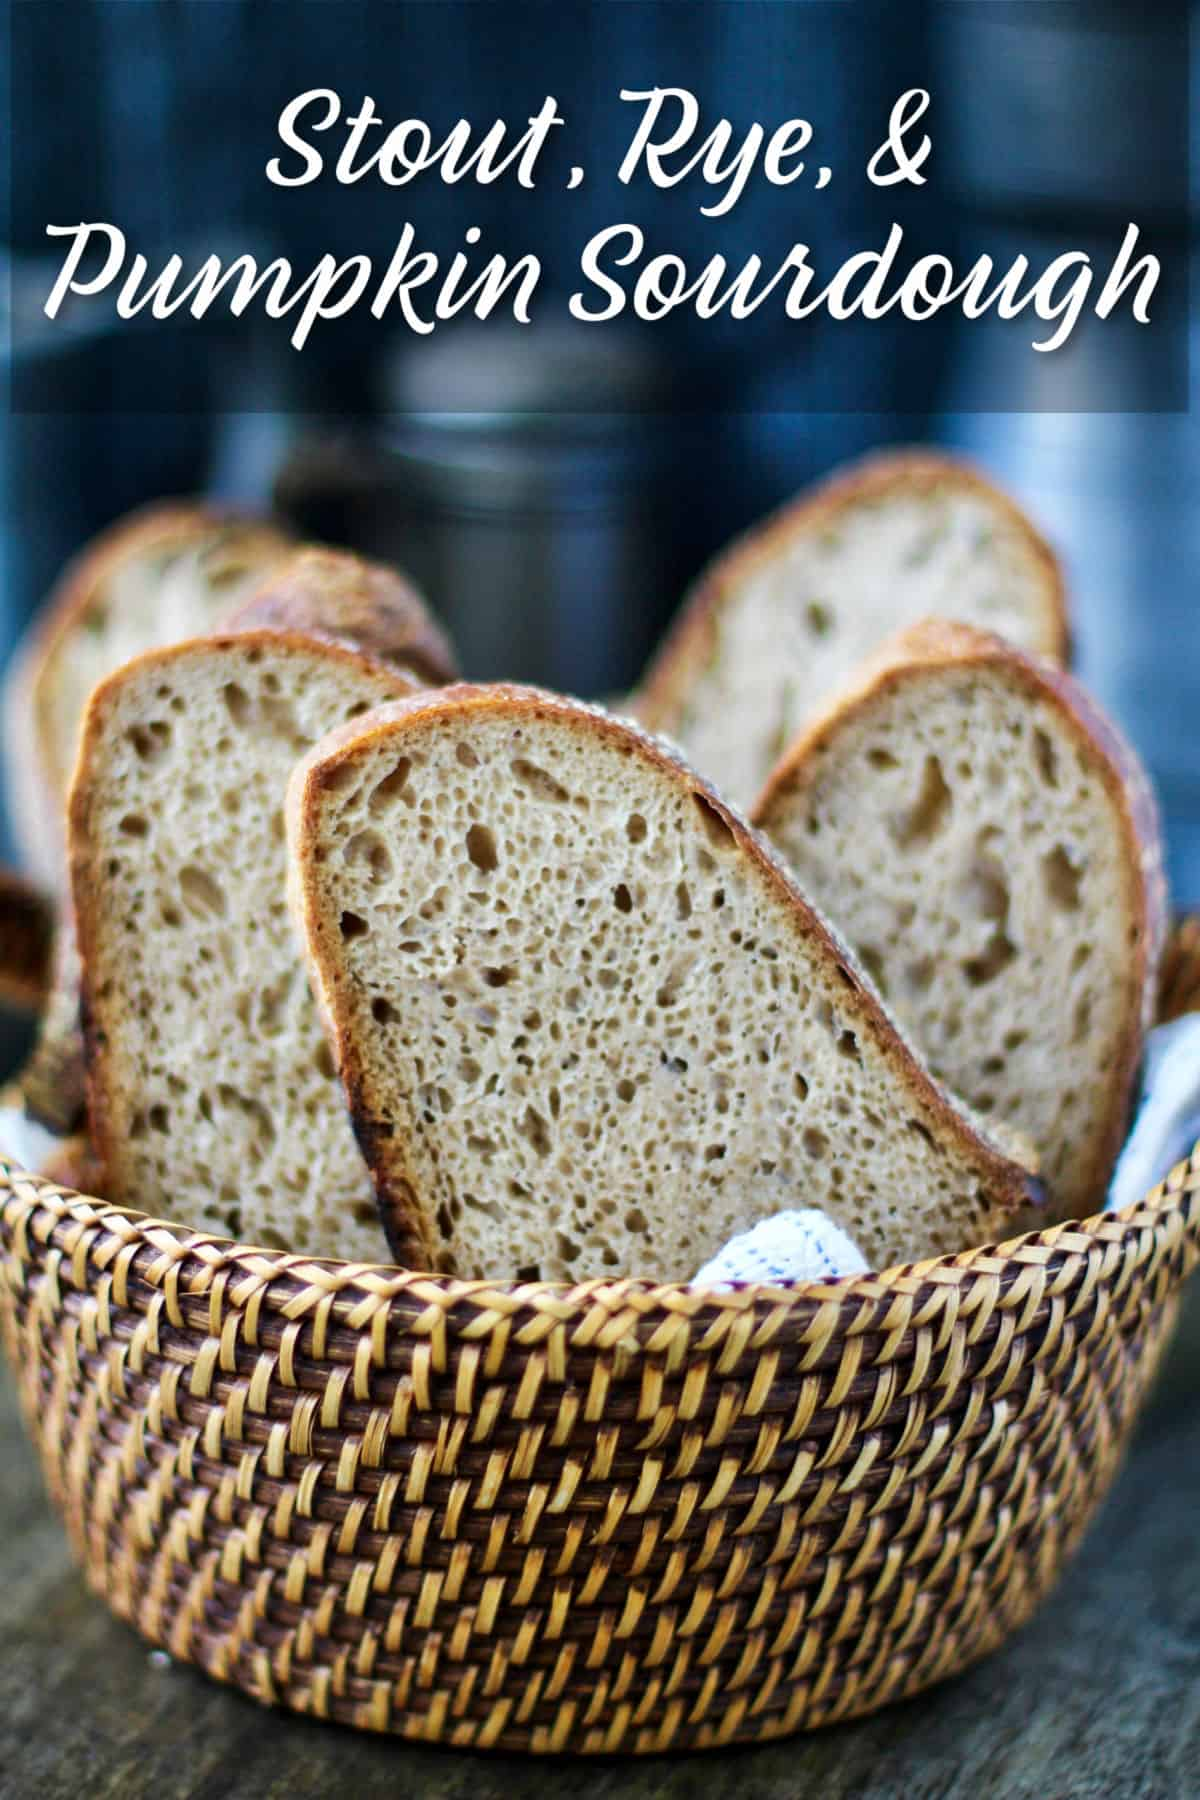 Stout, Rye, and Pumpkin Sourdough slices in a basket.